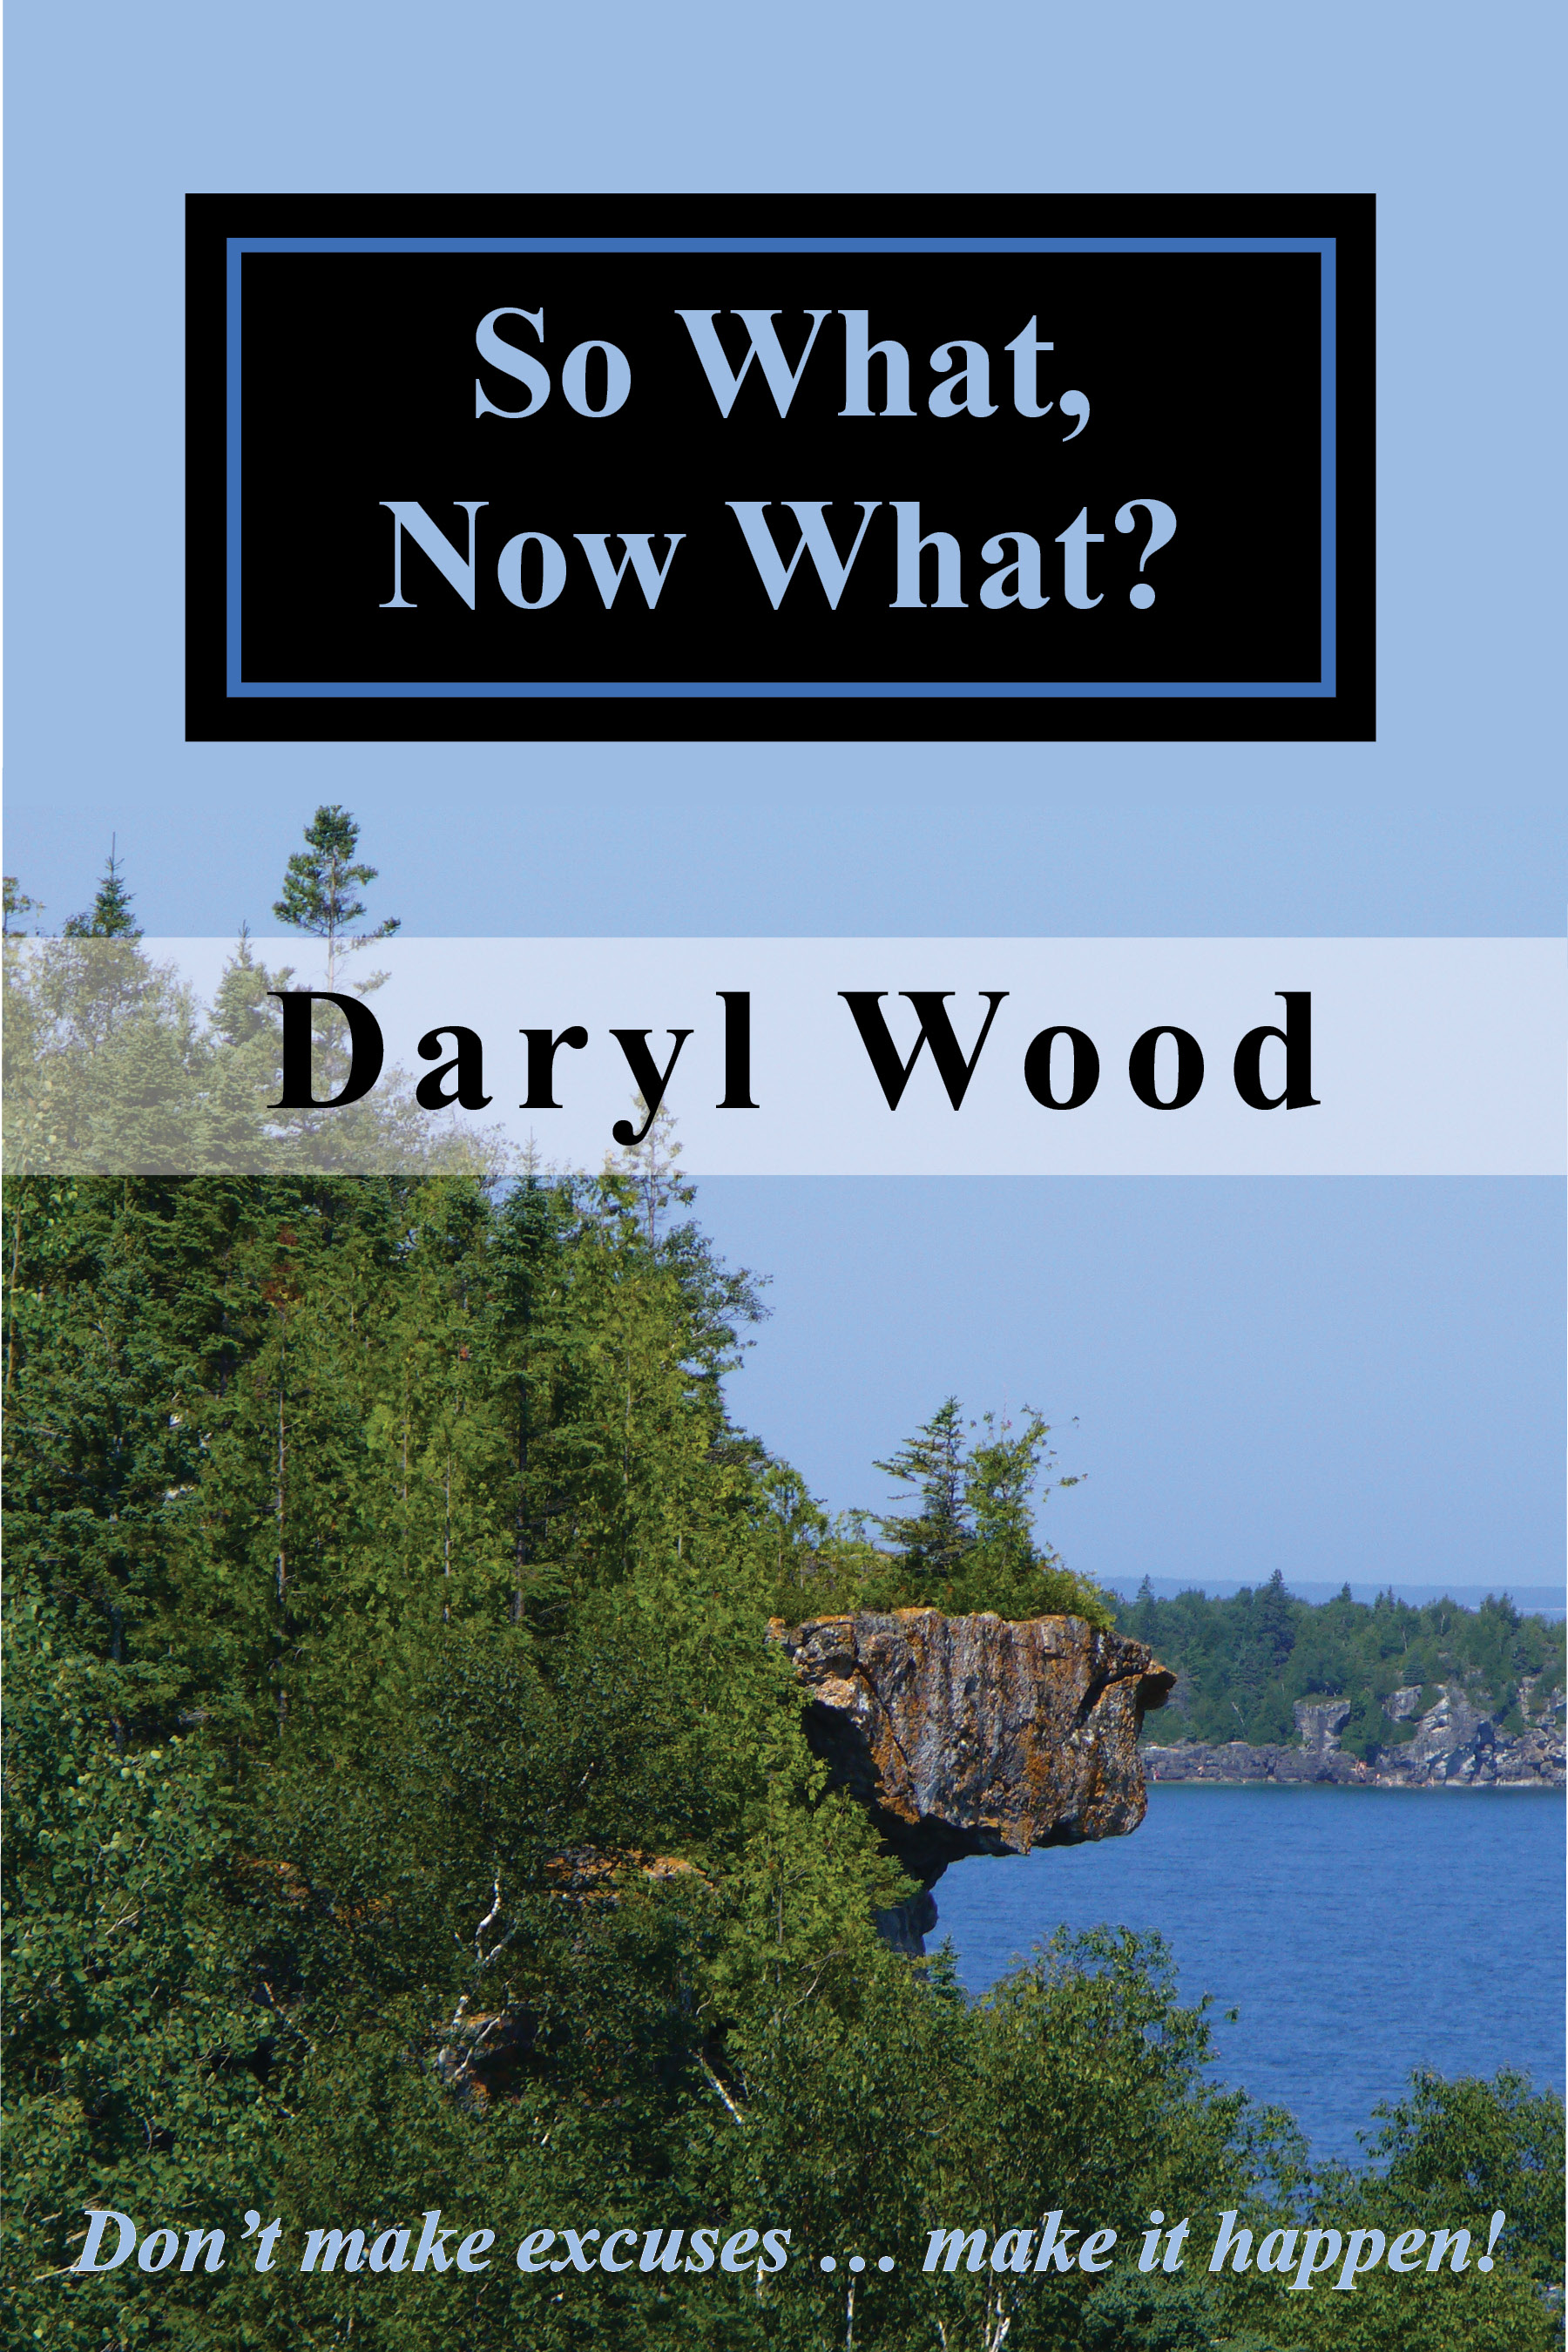 So What, Now What? by Daryl Wood